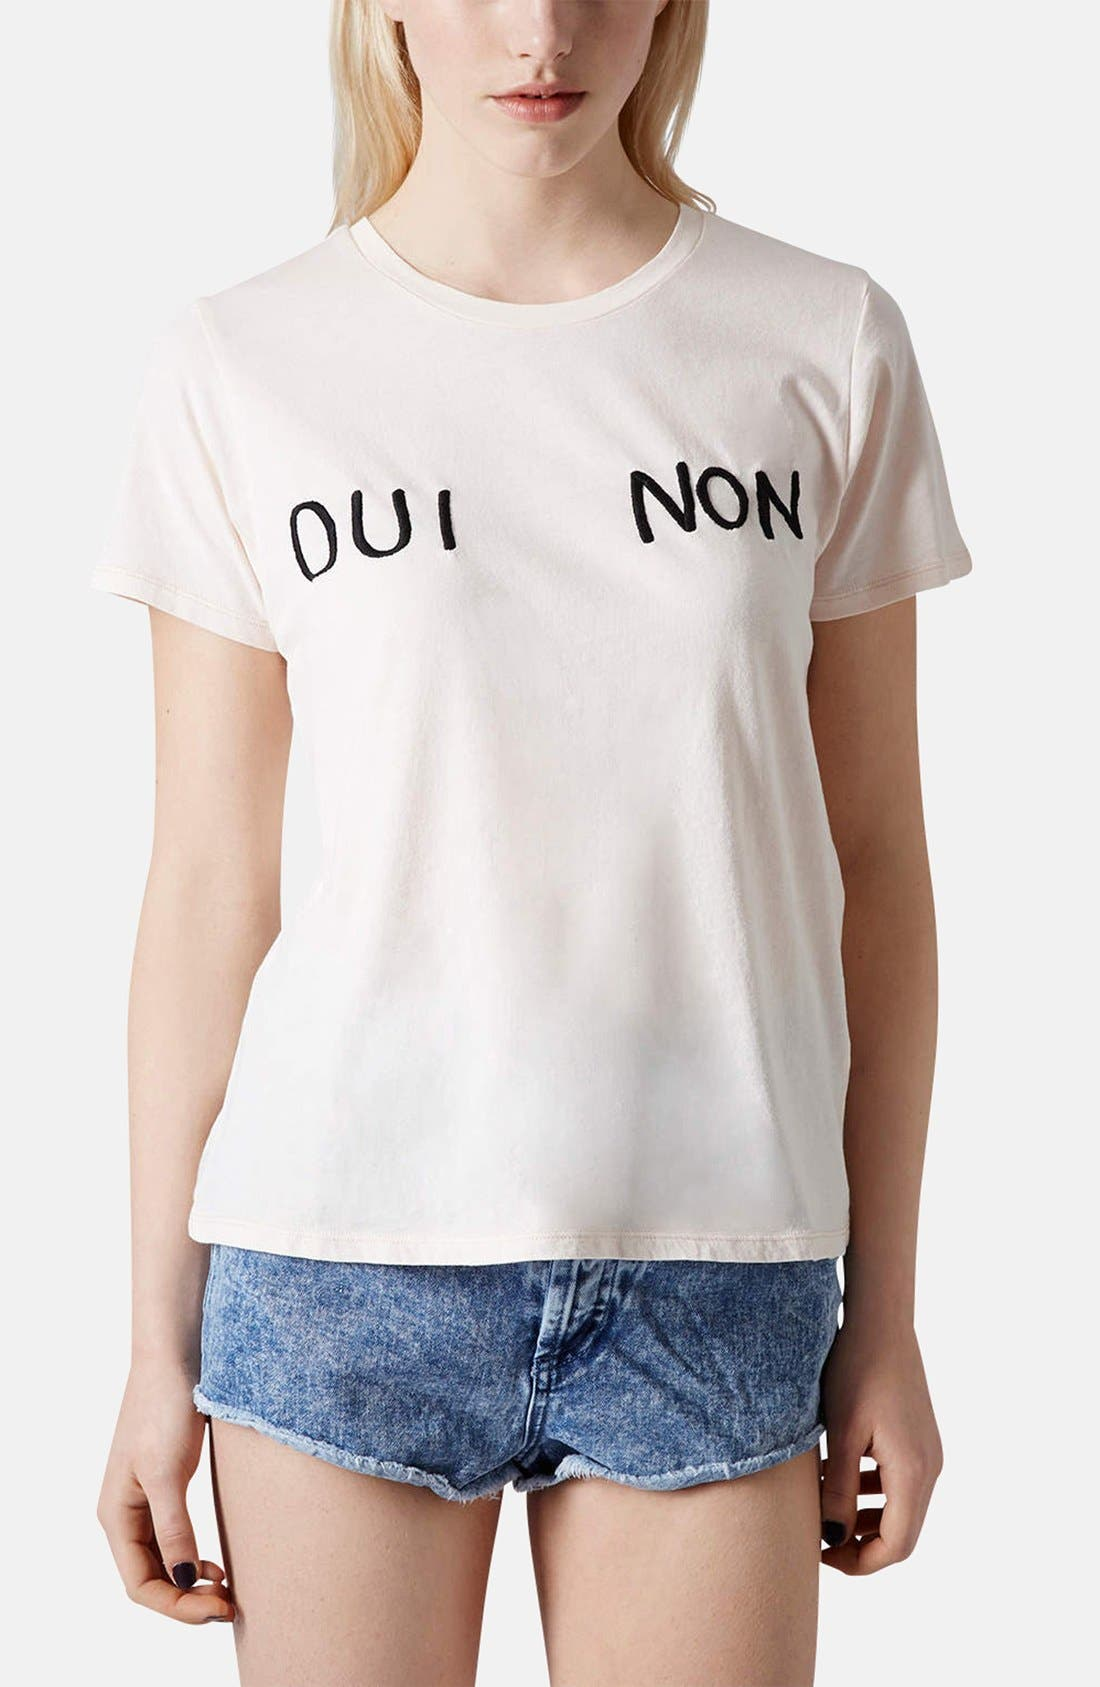 Main Image - Topshop 'Oui Non' Embroidered Cotton Tee